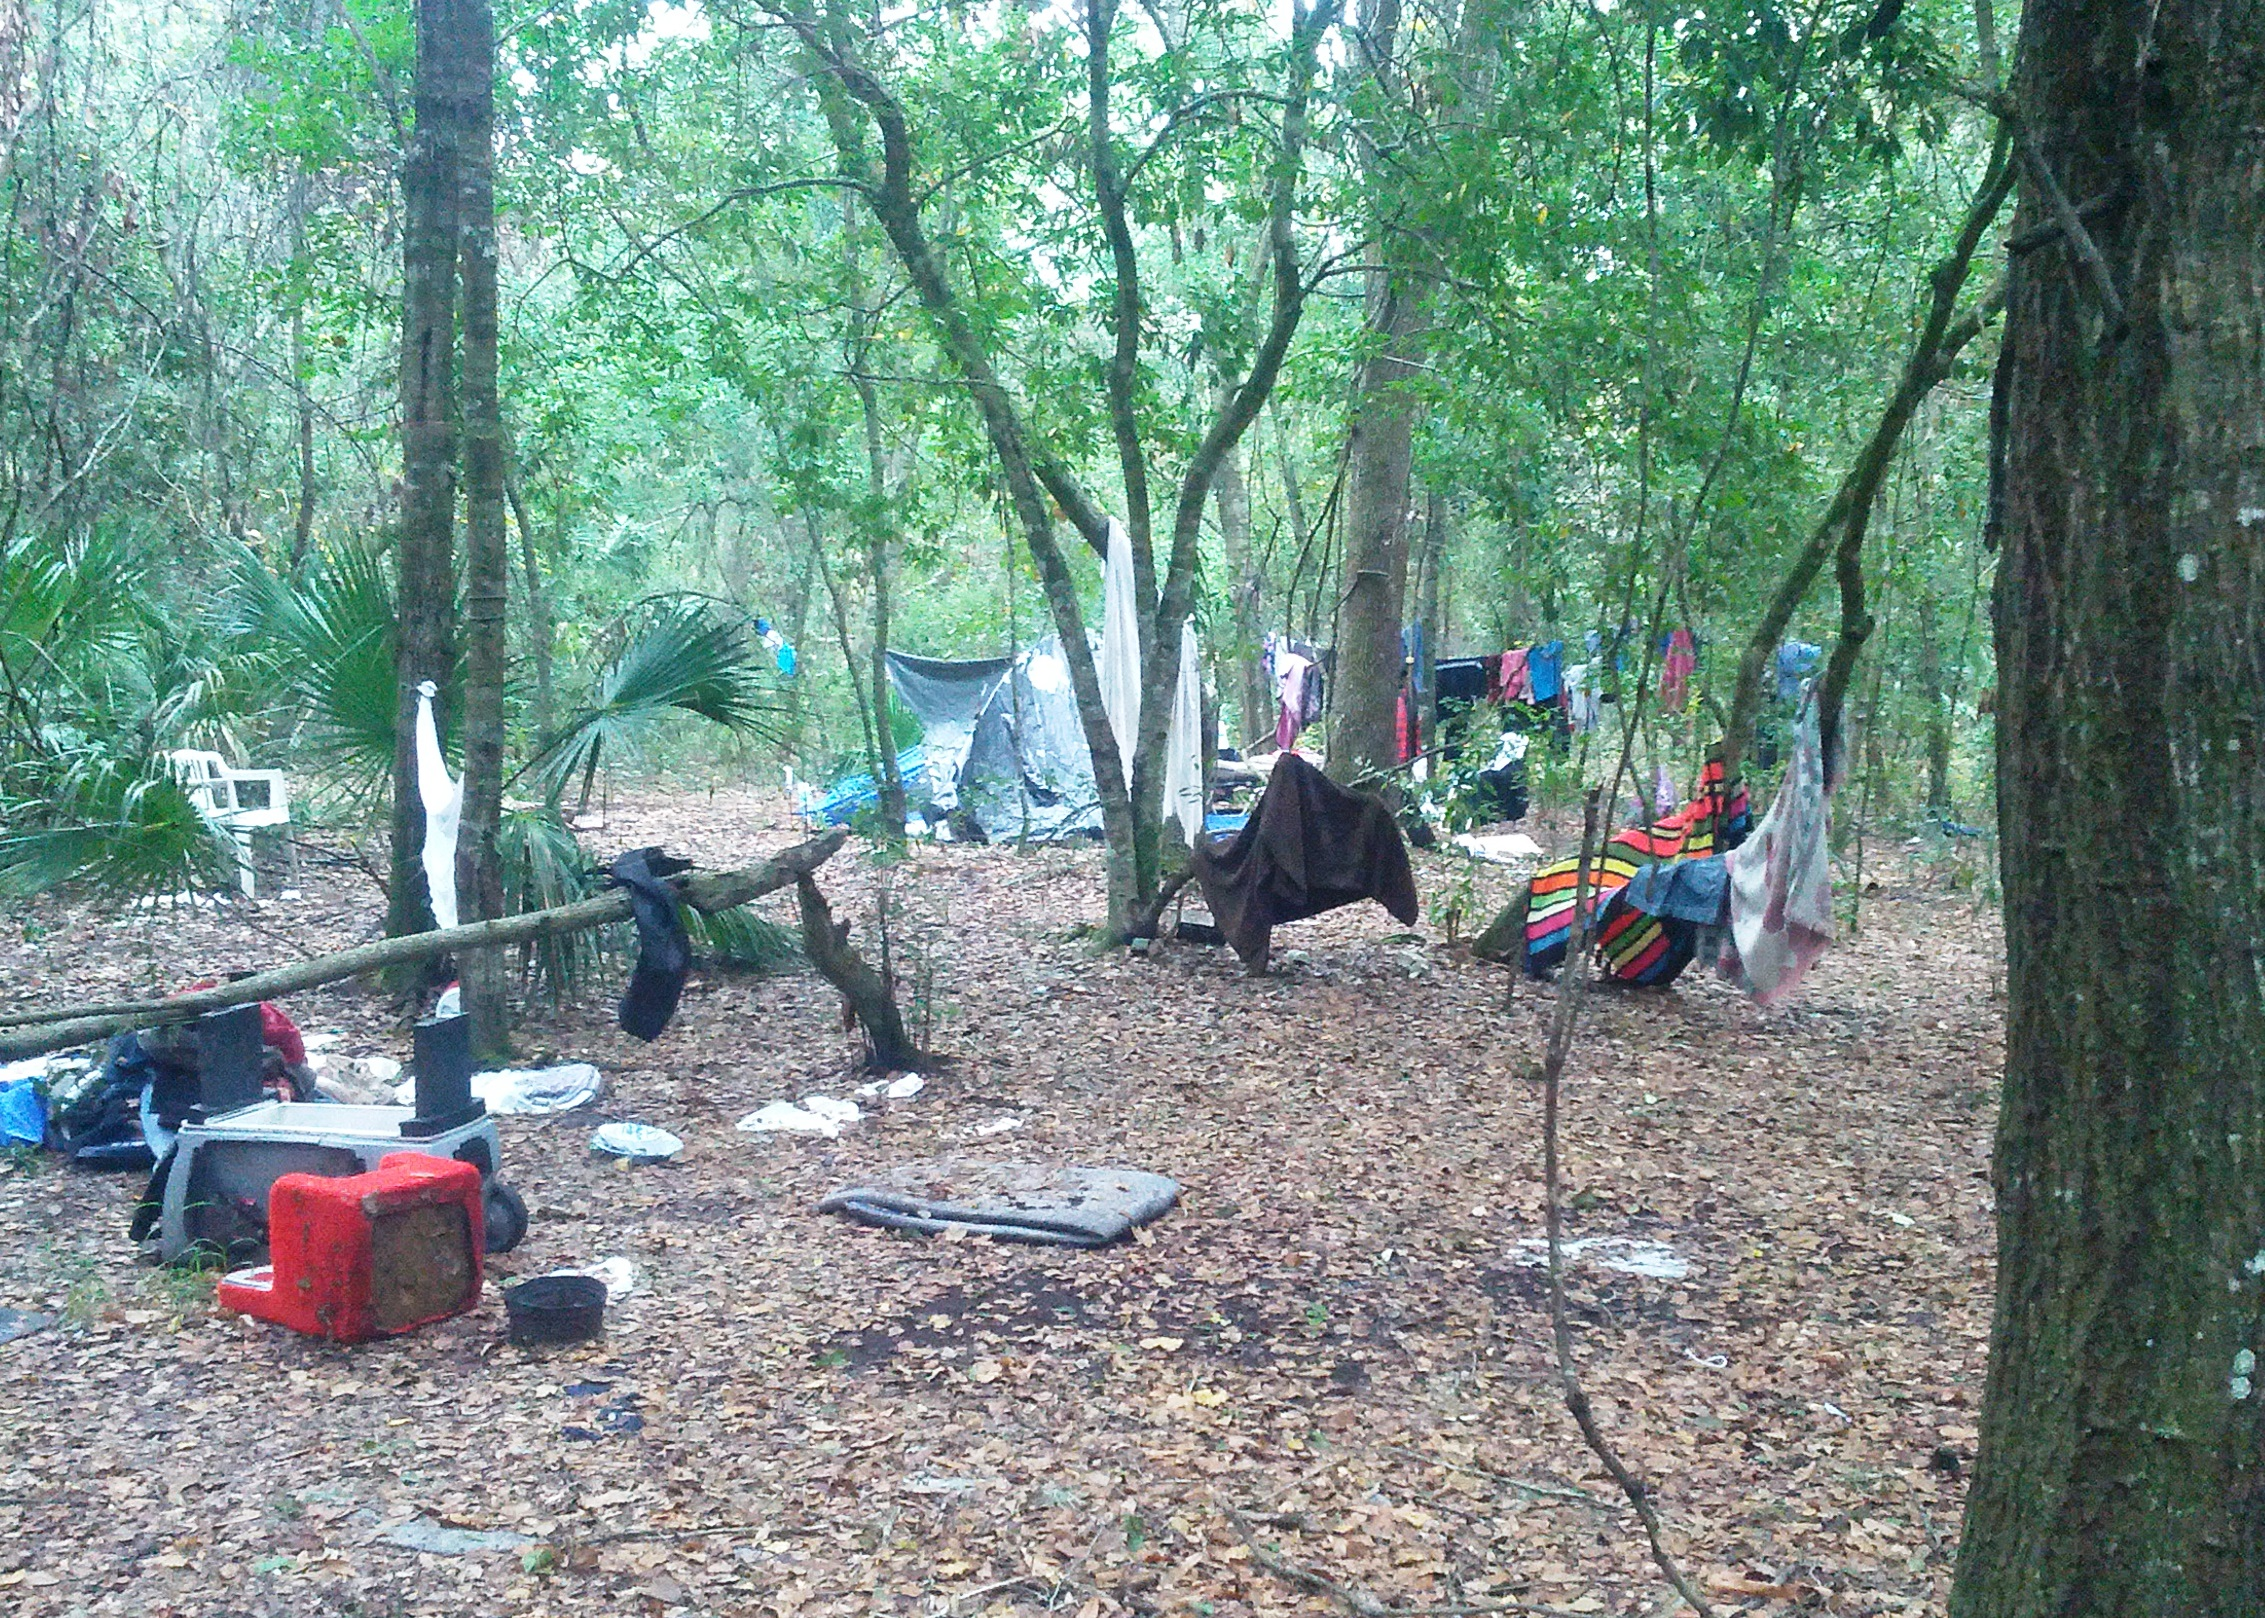 homeless vets camp where no shelters available | wusf news